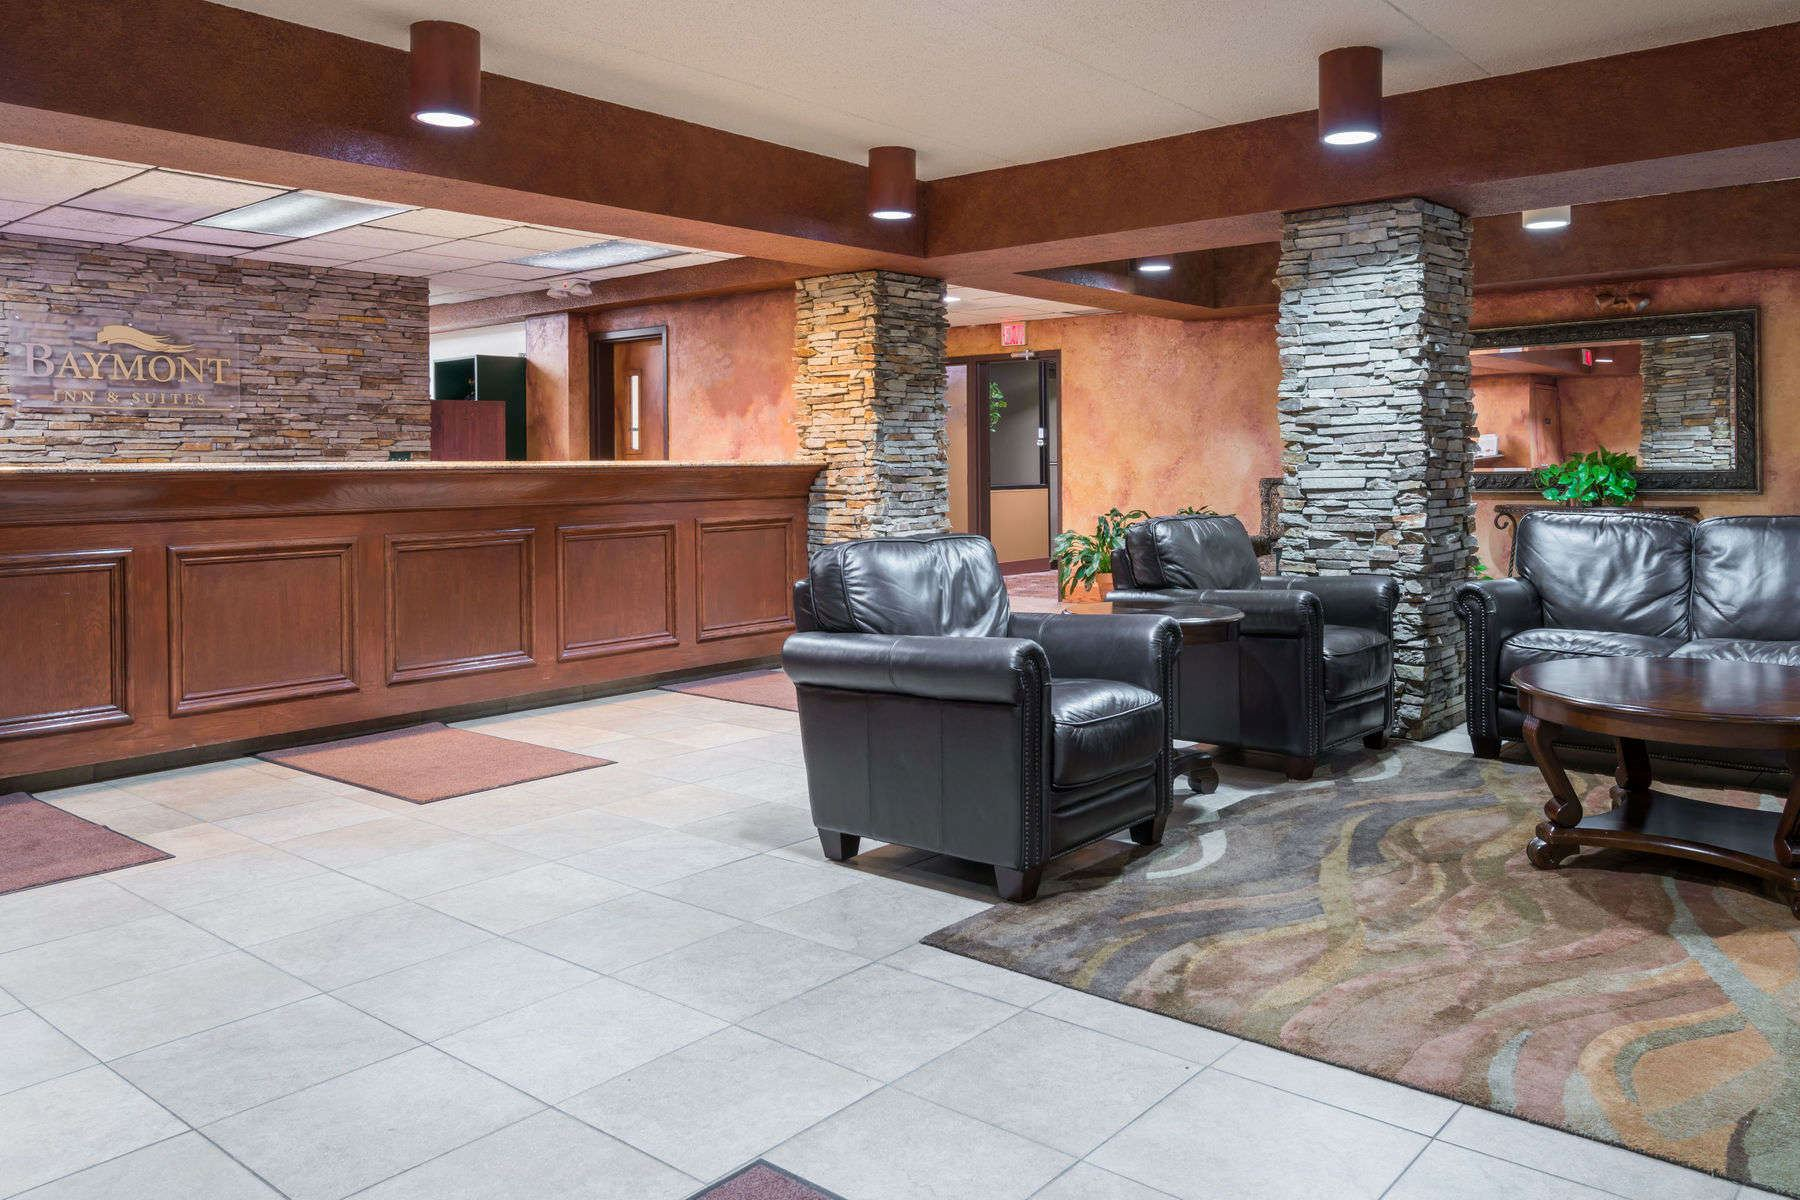 Baymont Inn and Suites Fargo - 2